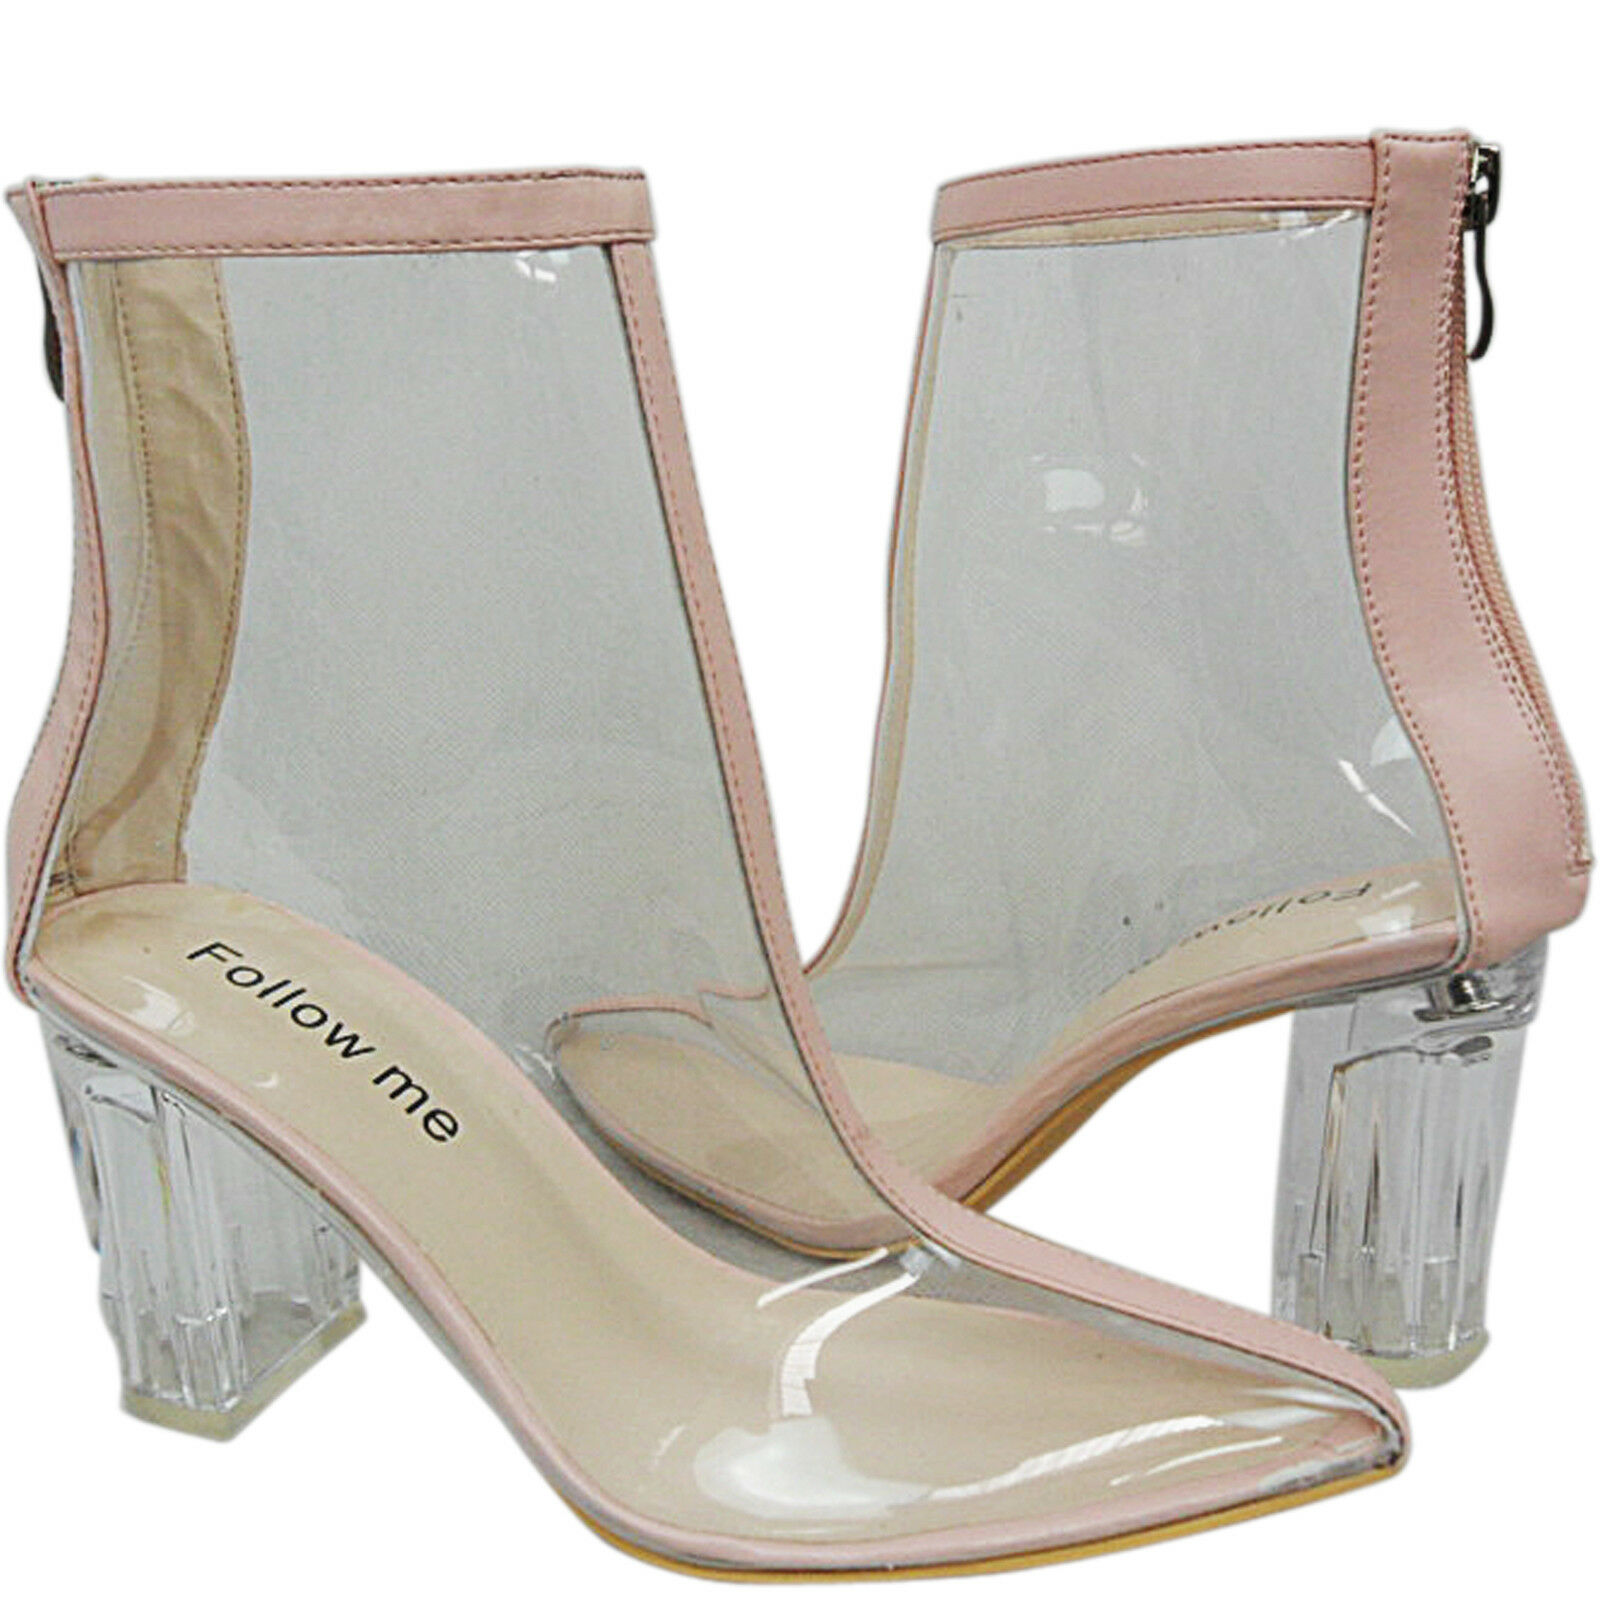 NEW WOMENS CLEAR PERSPEX GLASS HIGH MID HEELS ANKLE BOOTS SHOES SIZE ZIP POINTED